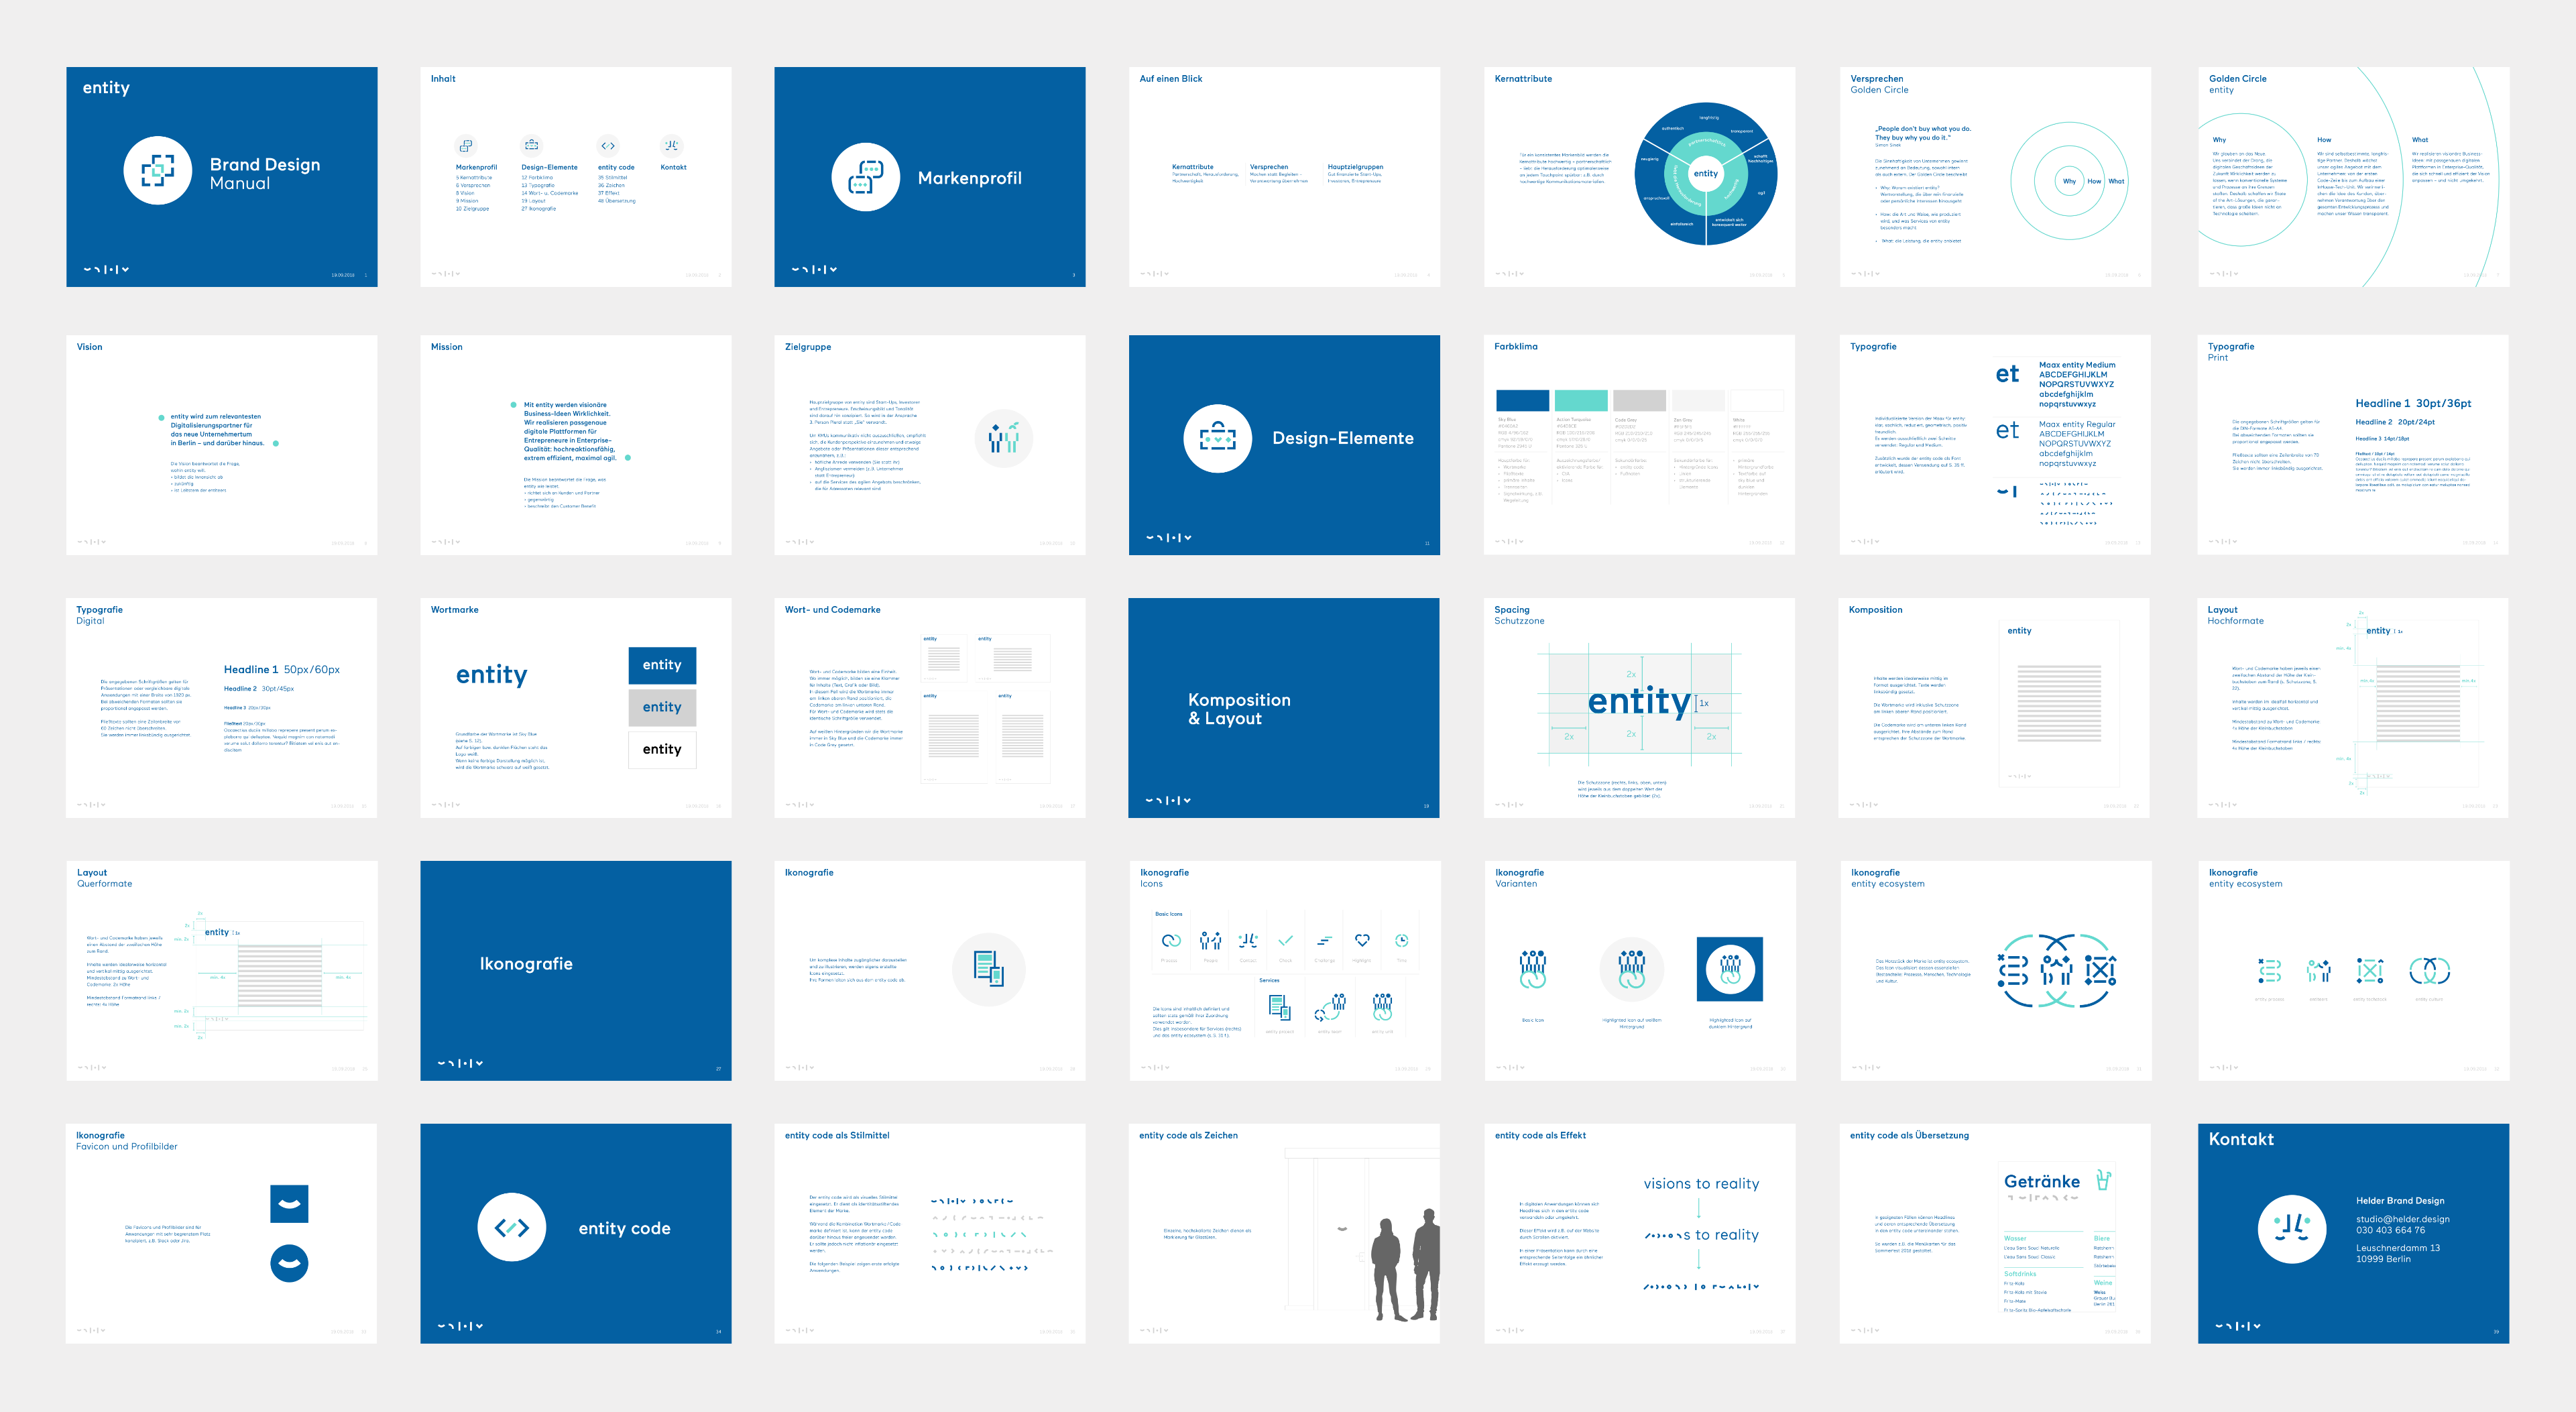 entity Brand Design Manual